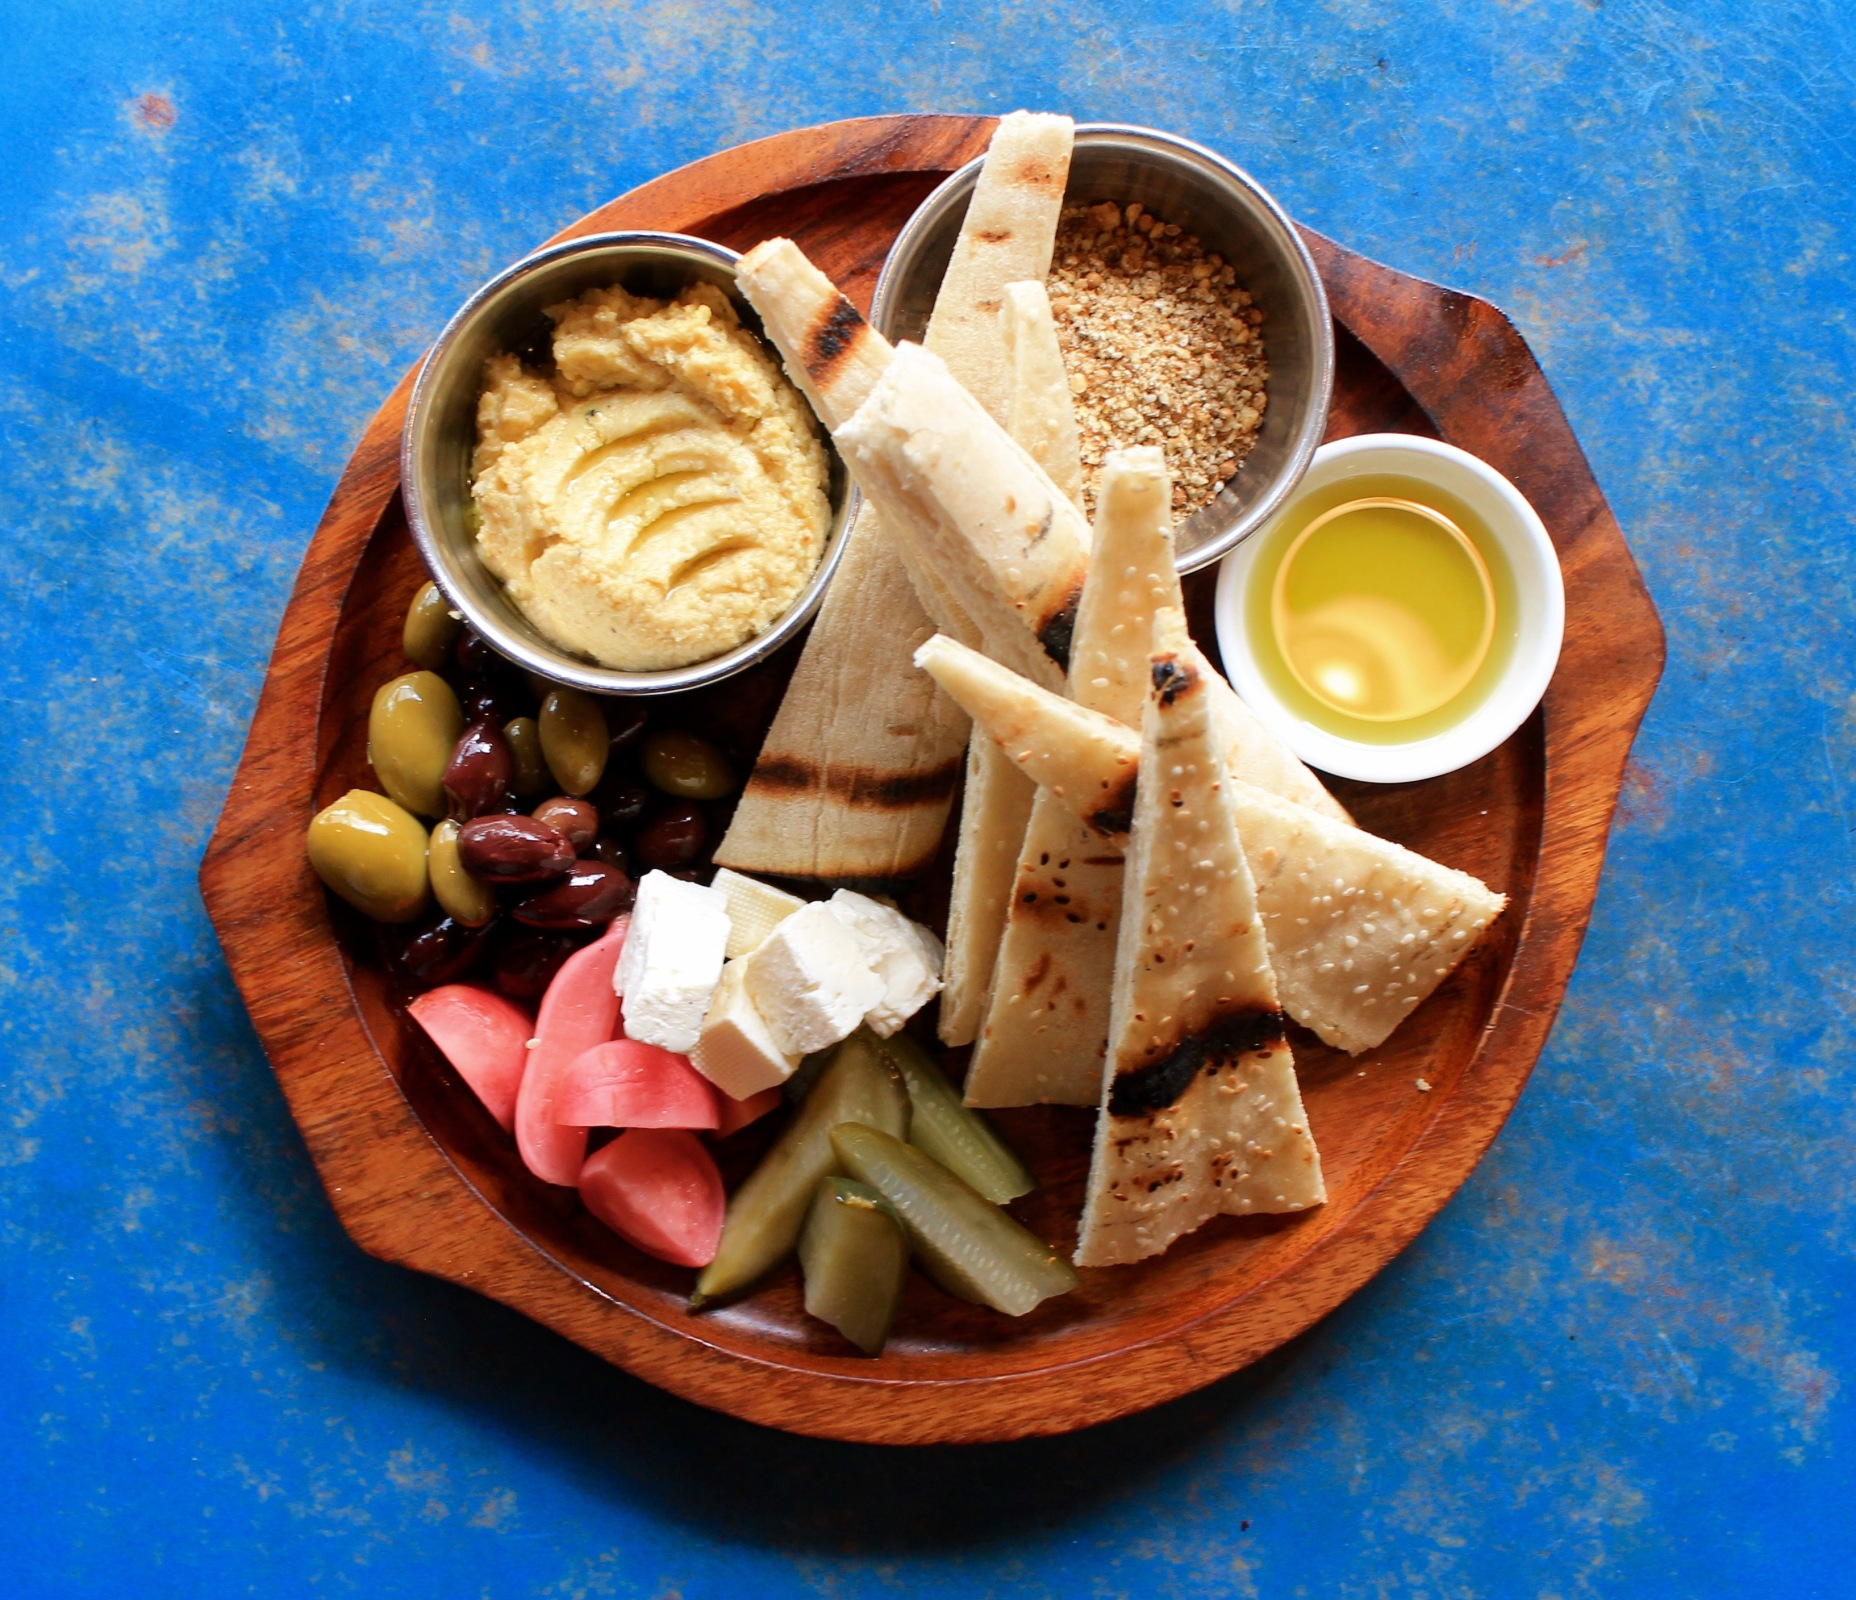 mezze platter - EAT 2 FEED TO | Harvest Kitchen & Good Food for Good